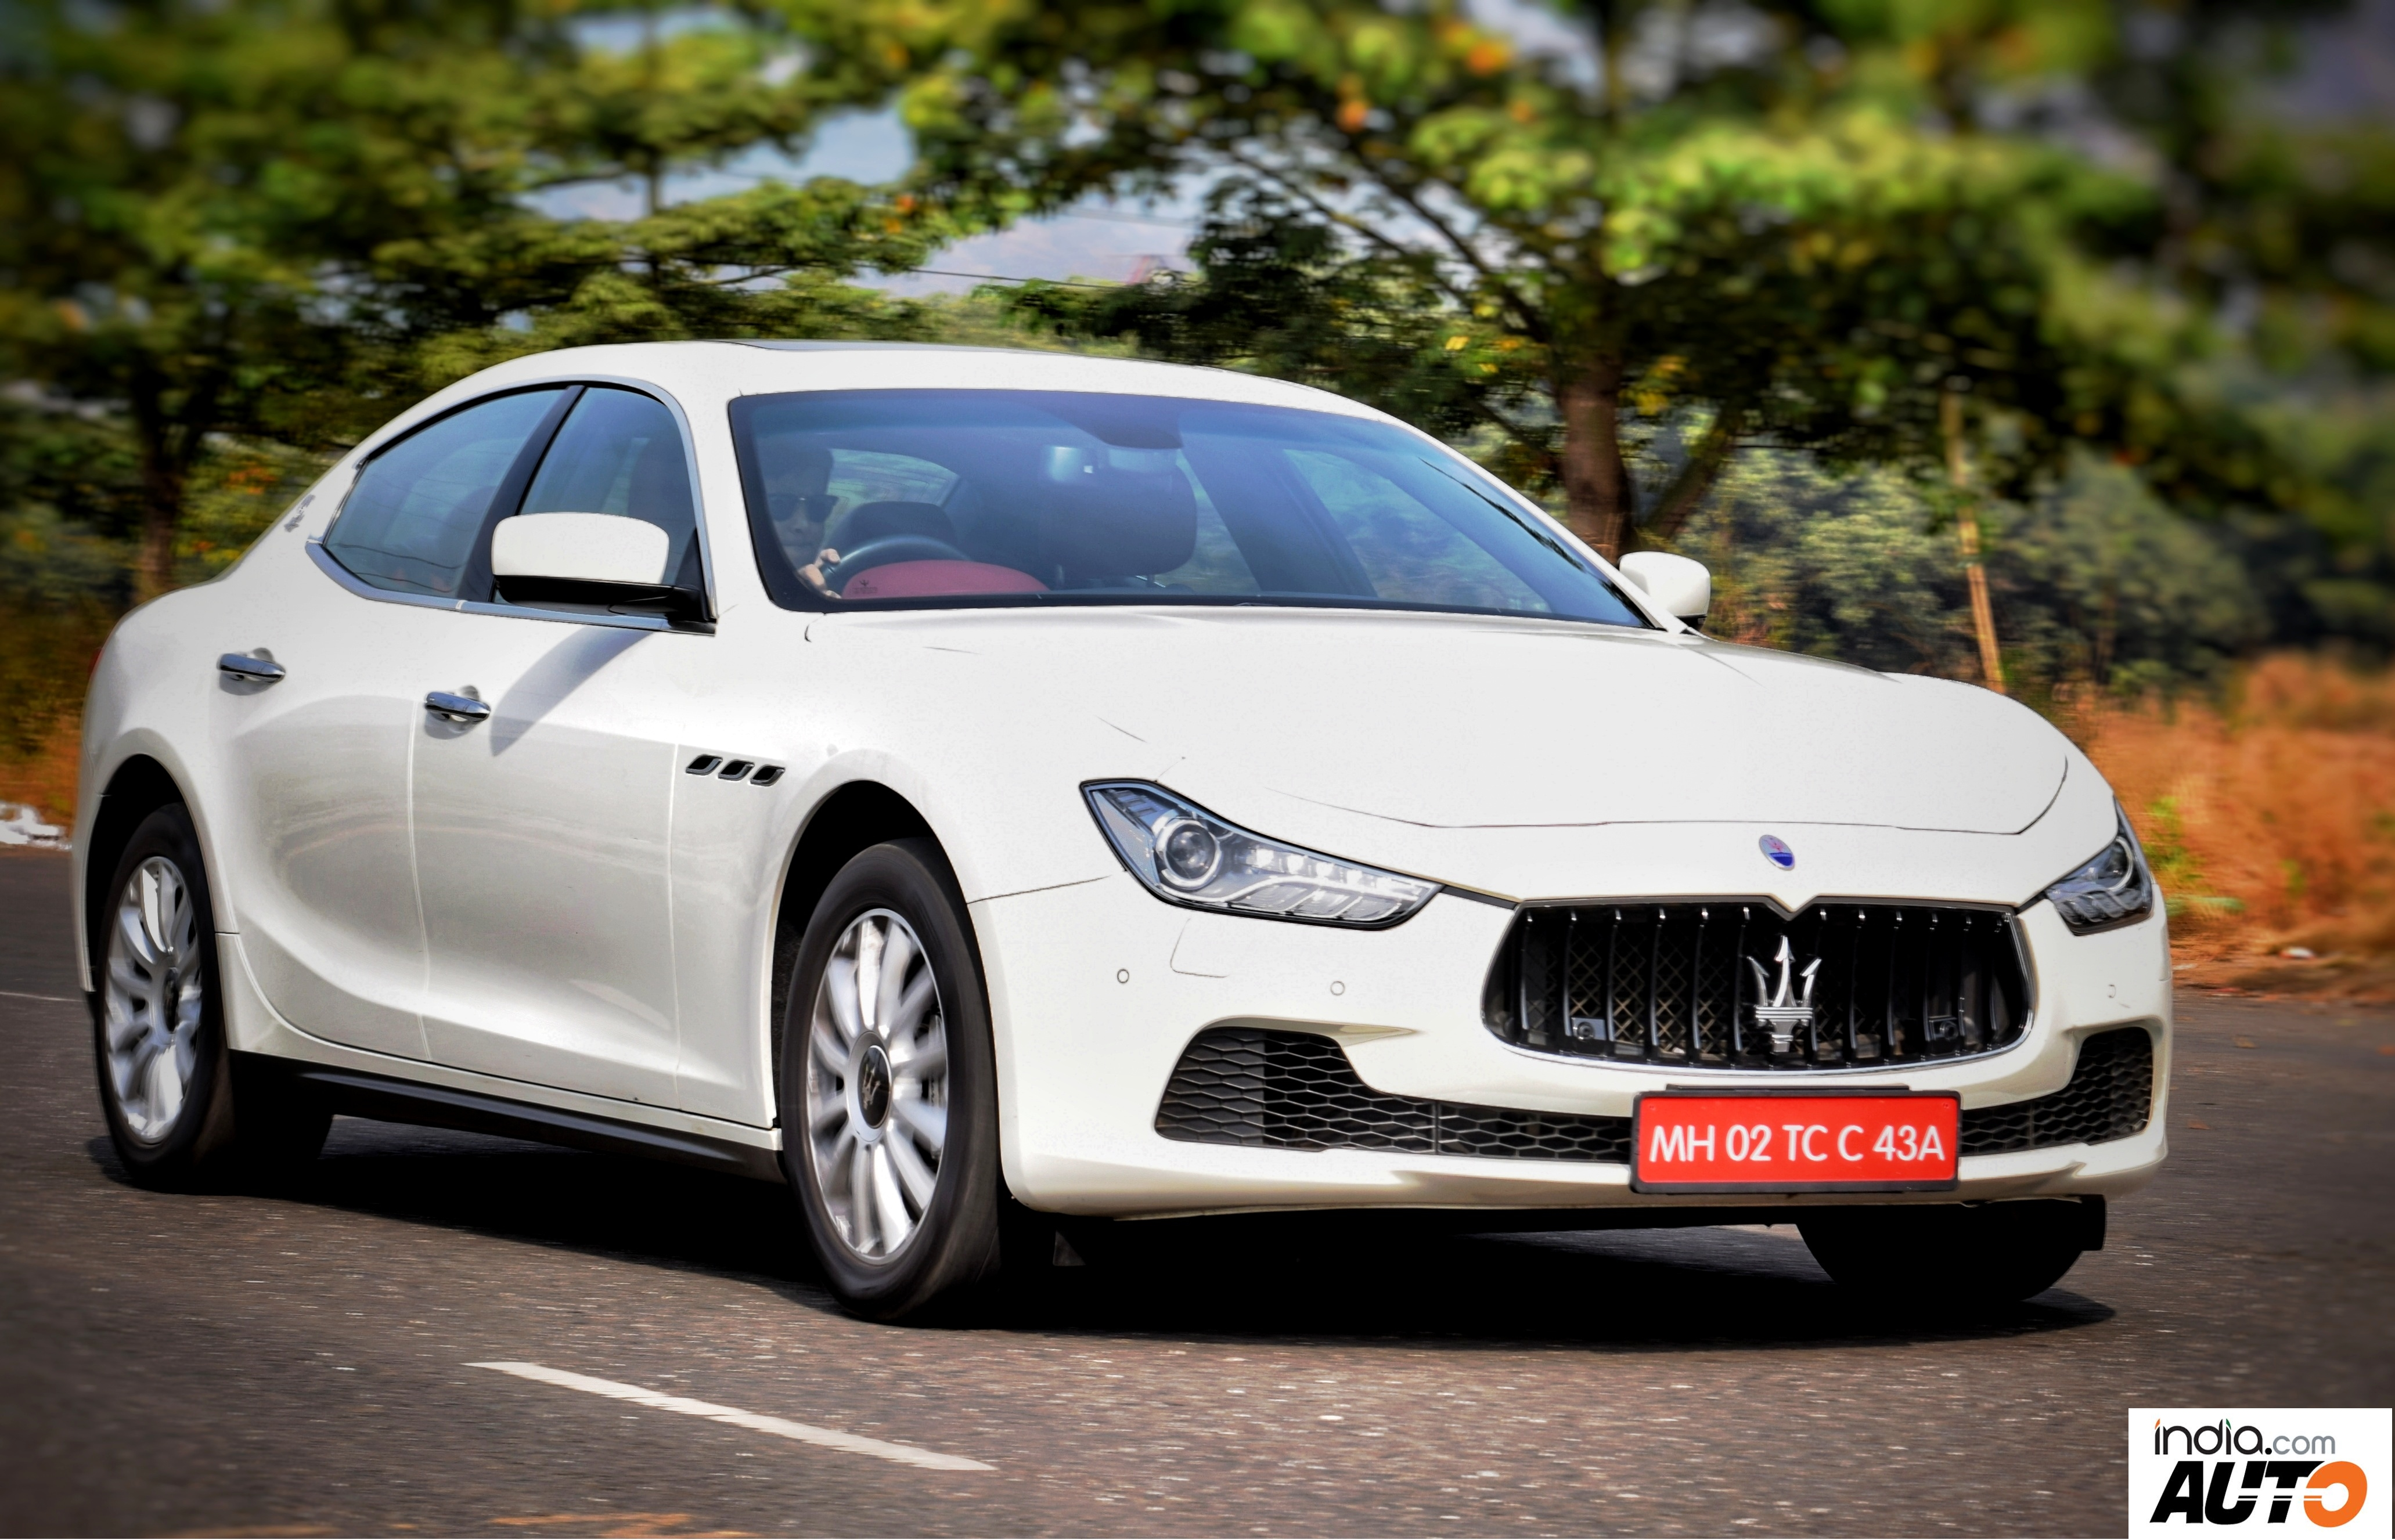 Maserati Ghibli in Action - Front Quarter